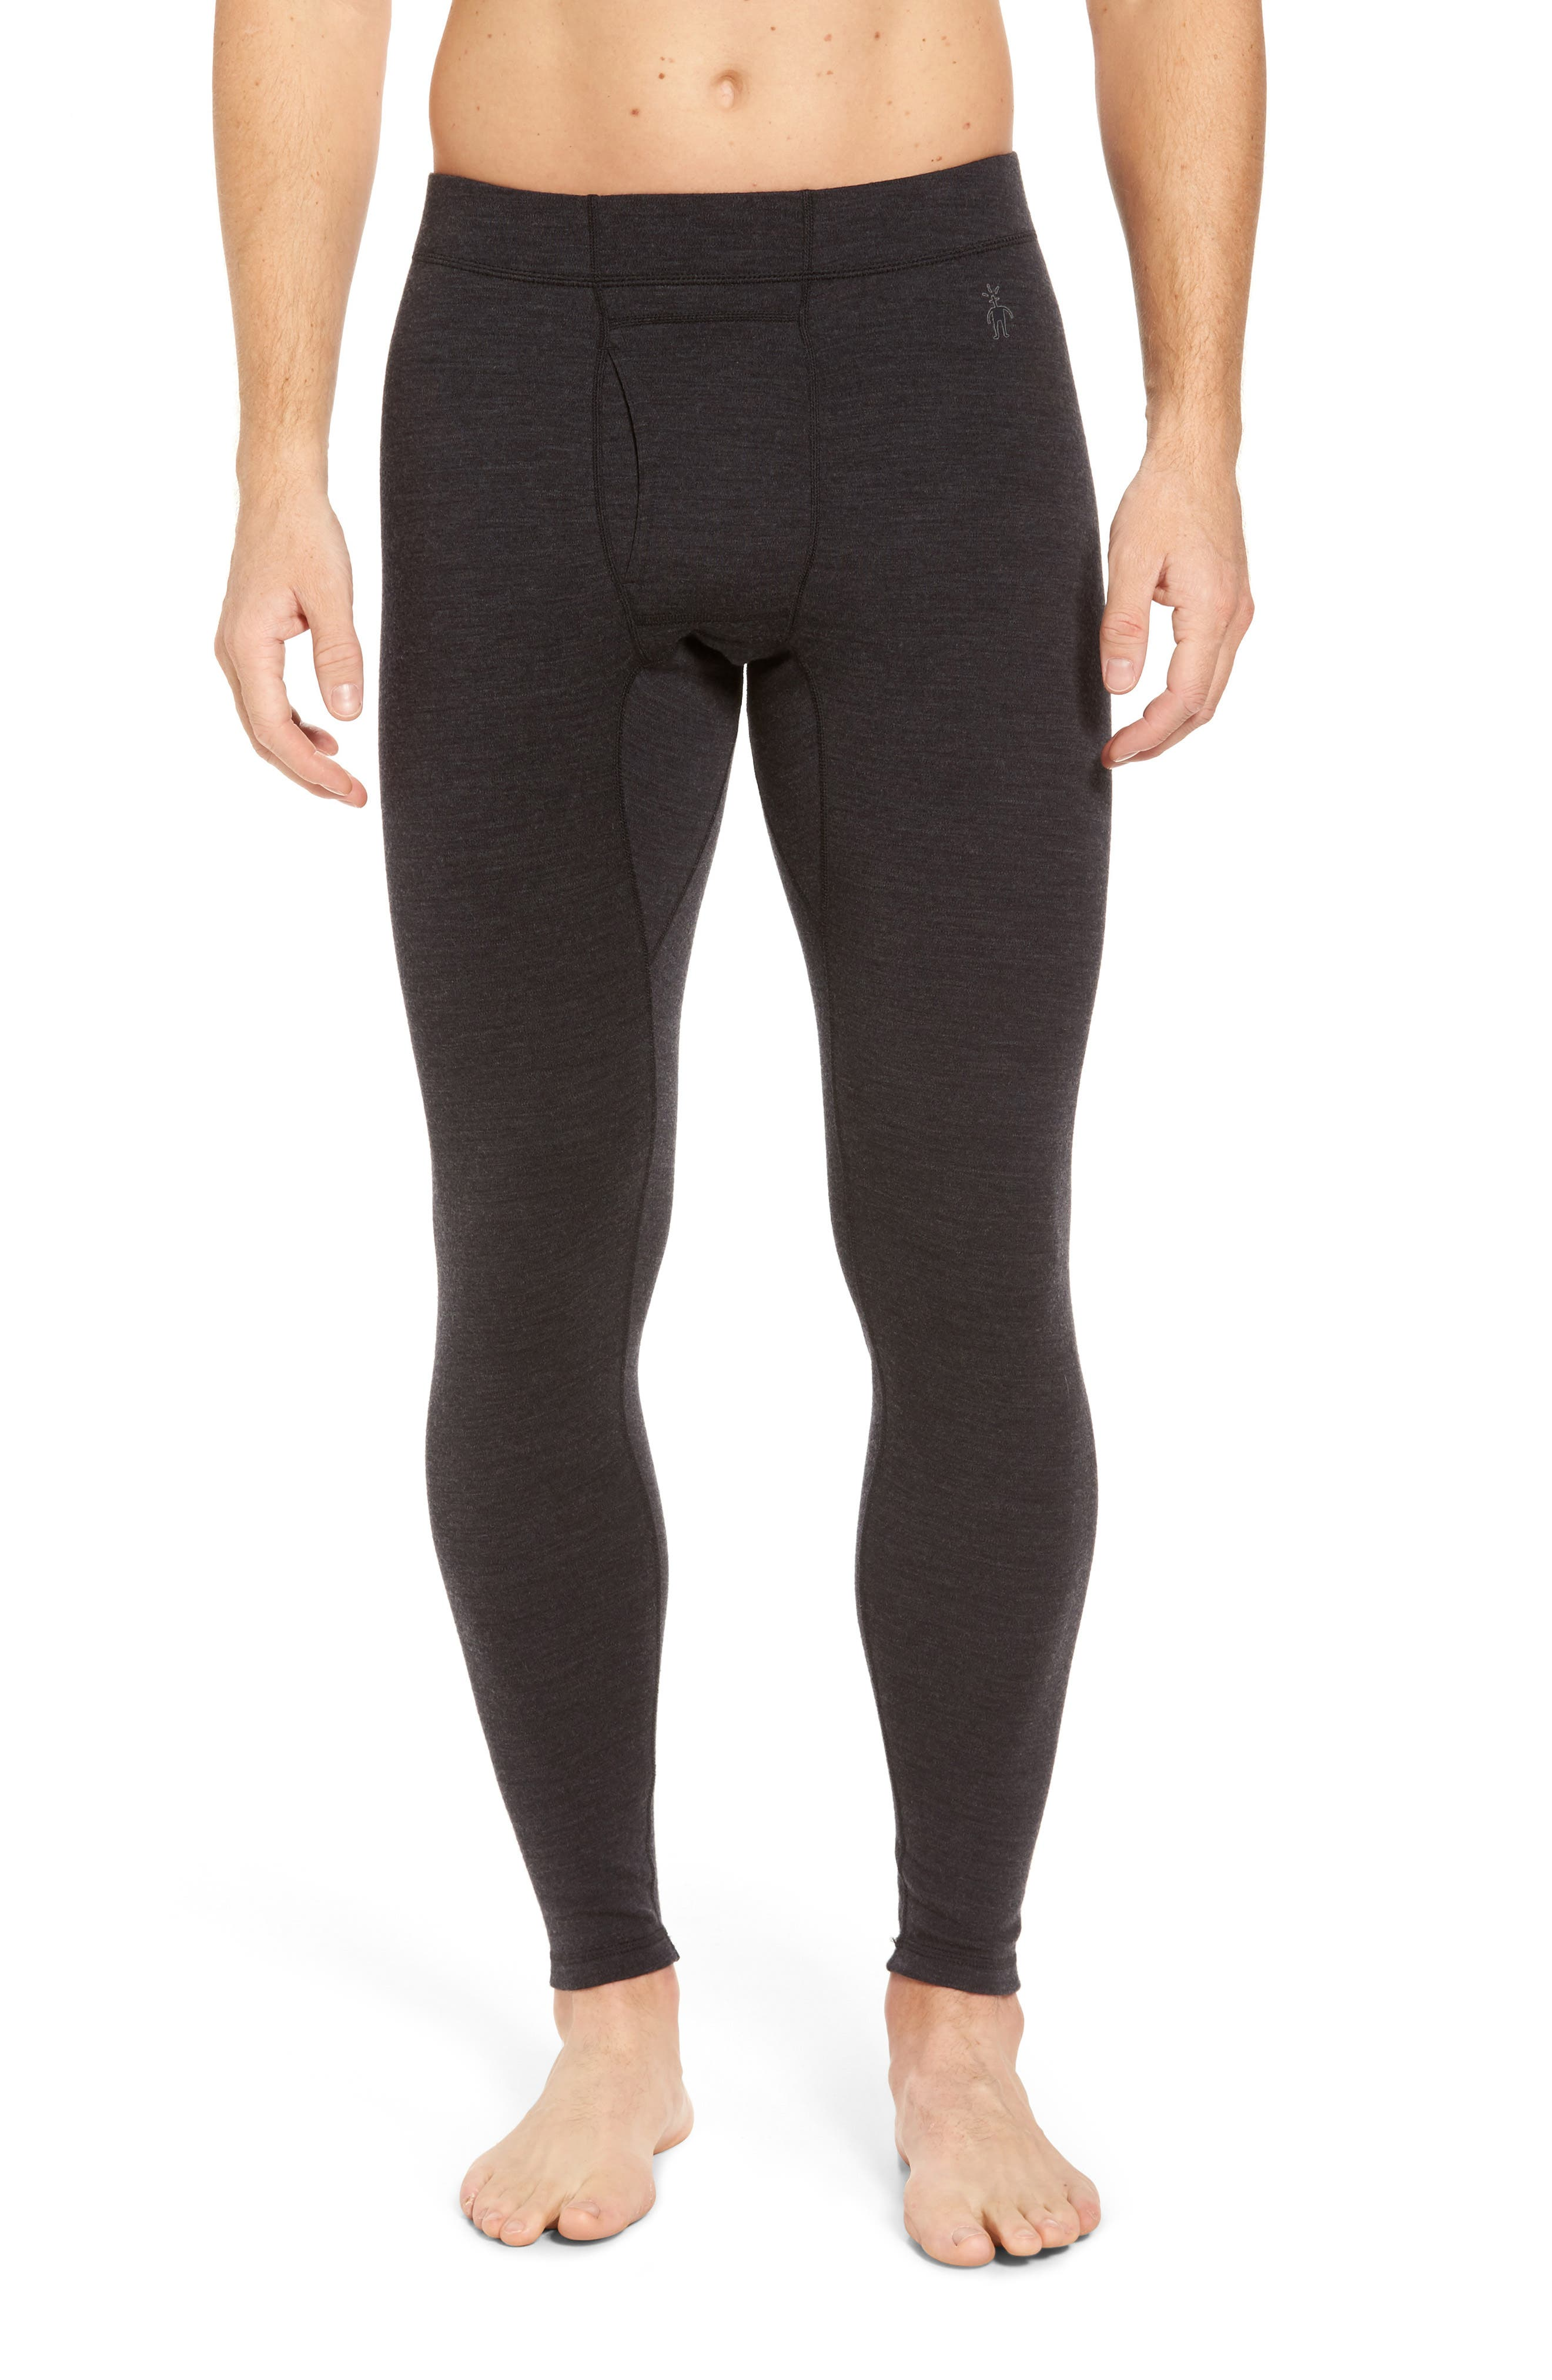 Merino 250 Base Layer Bottoms,                         Main,                         color, CHARCOAL HEATHER